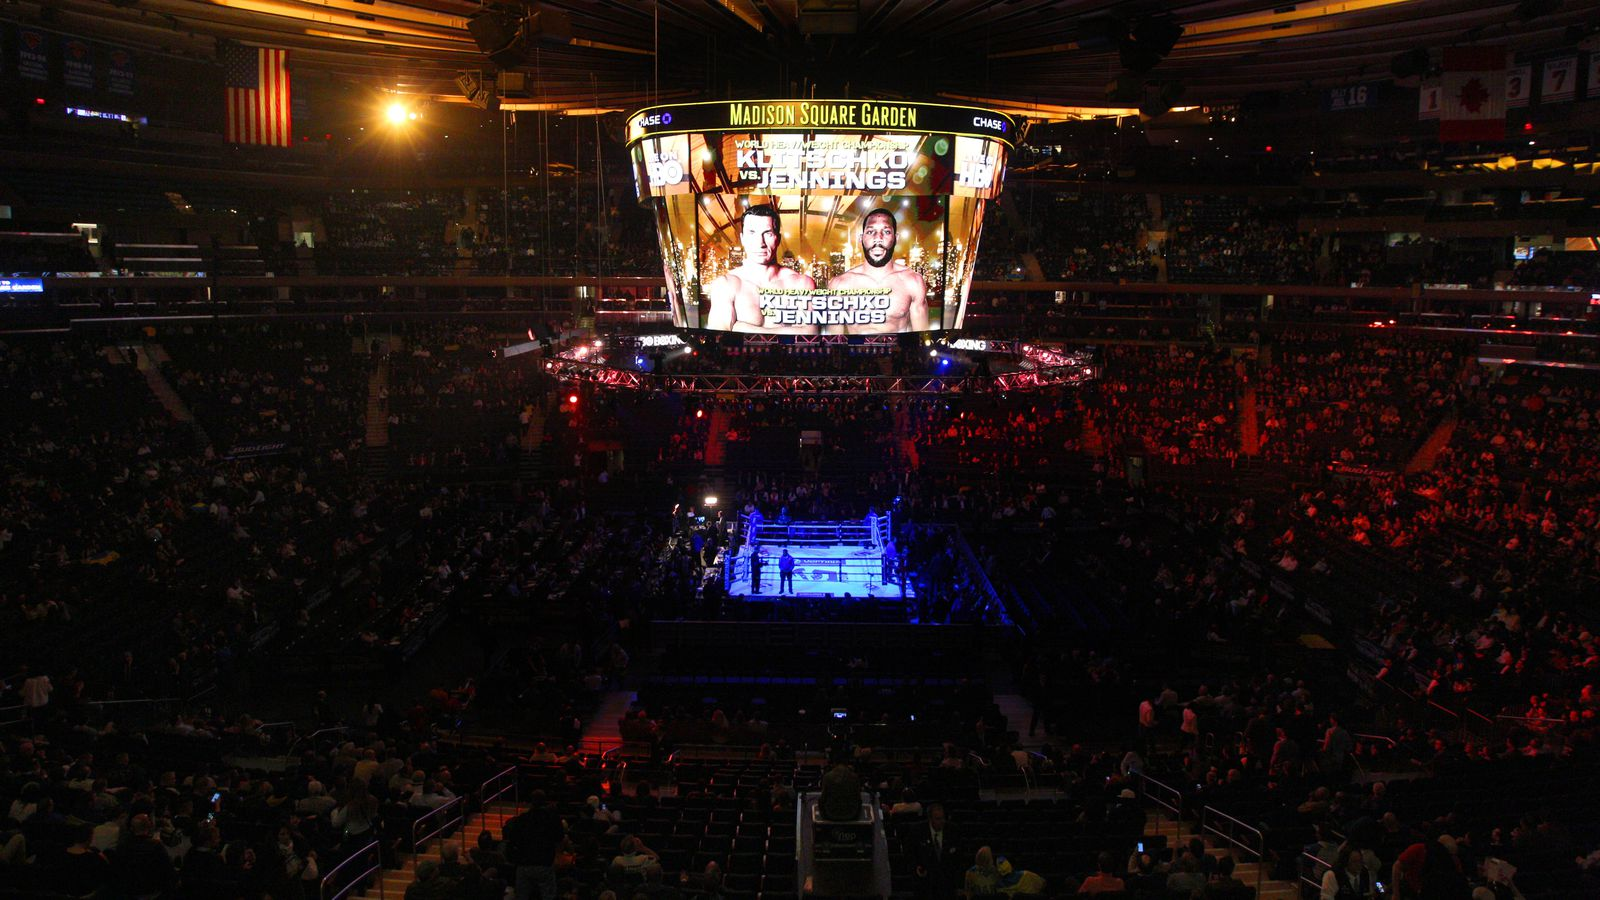 Ufc Plans To Hold April 2016 Event In Madison Square Garden Bloody Elbow